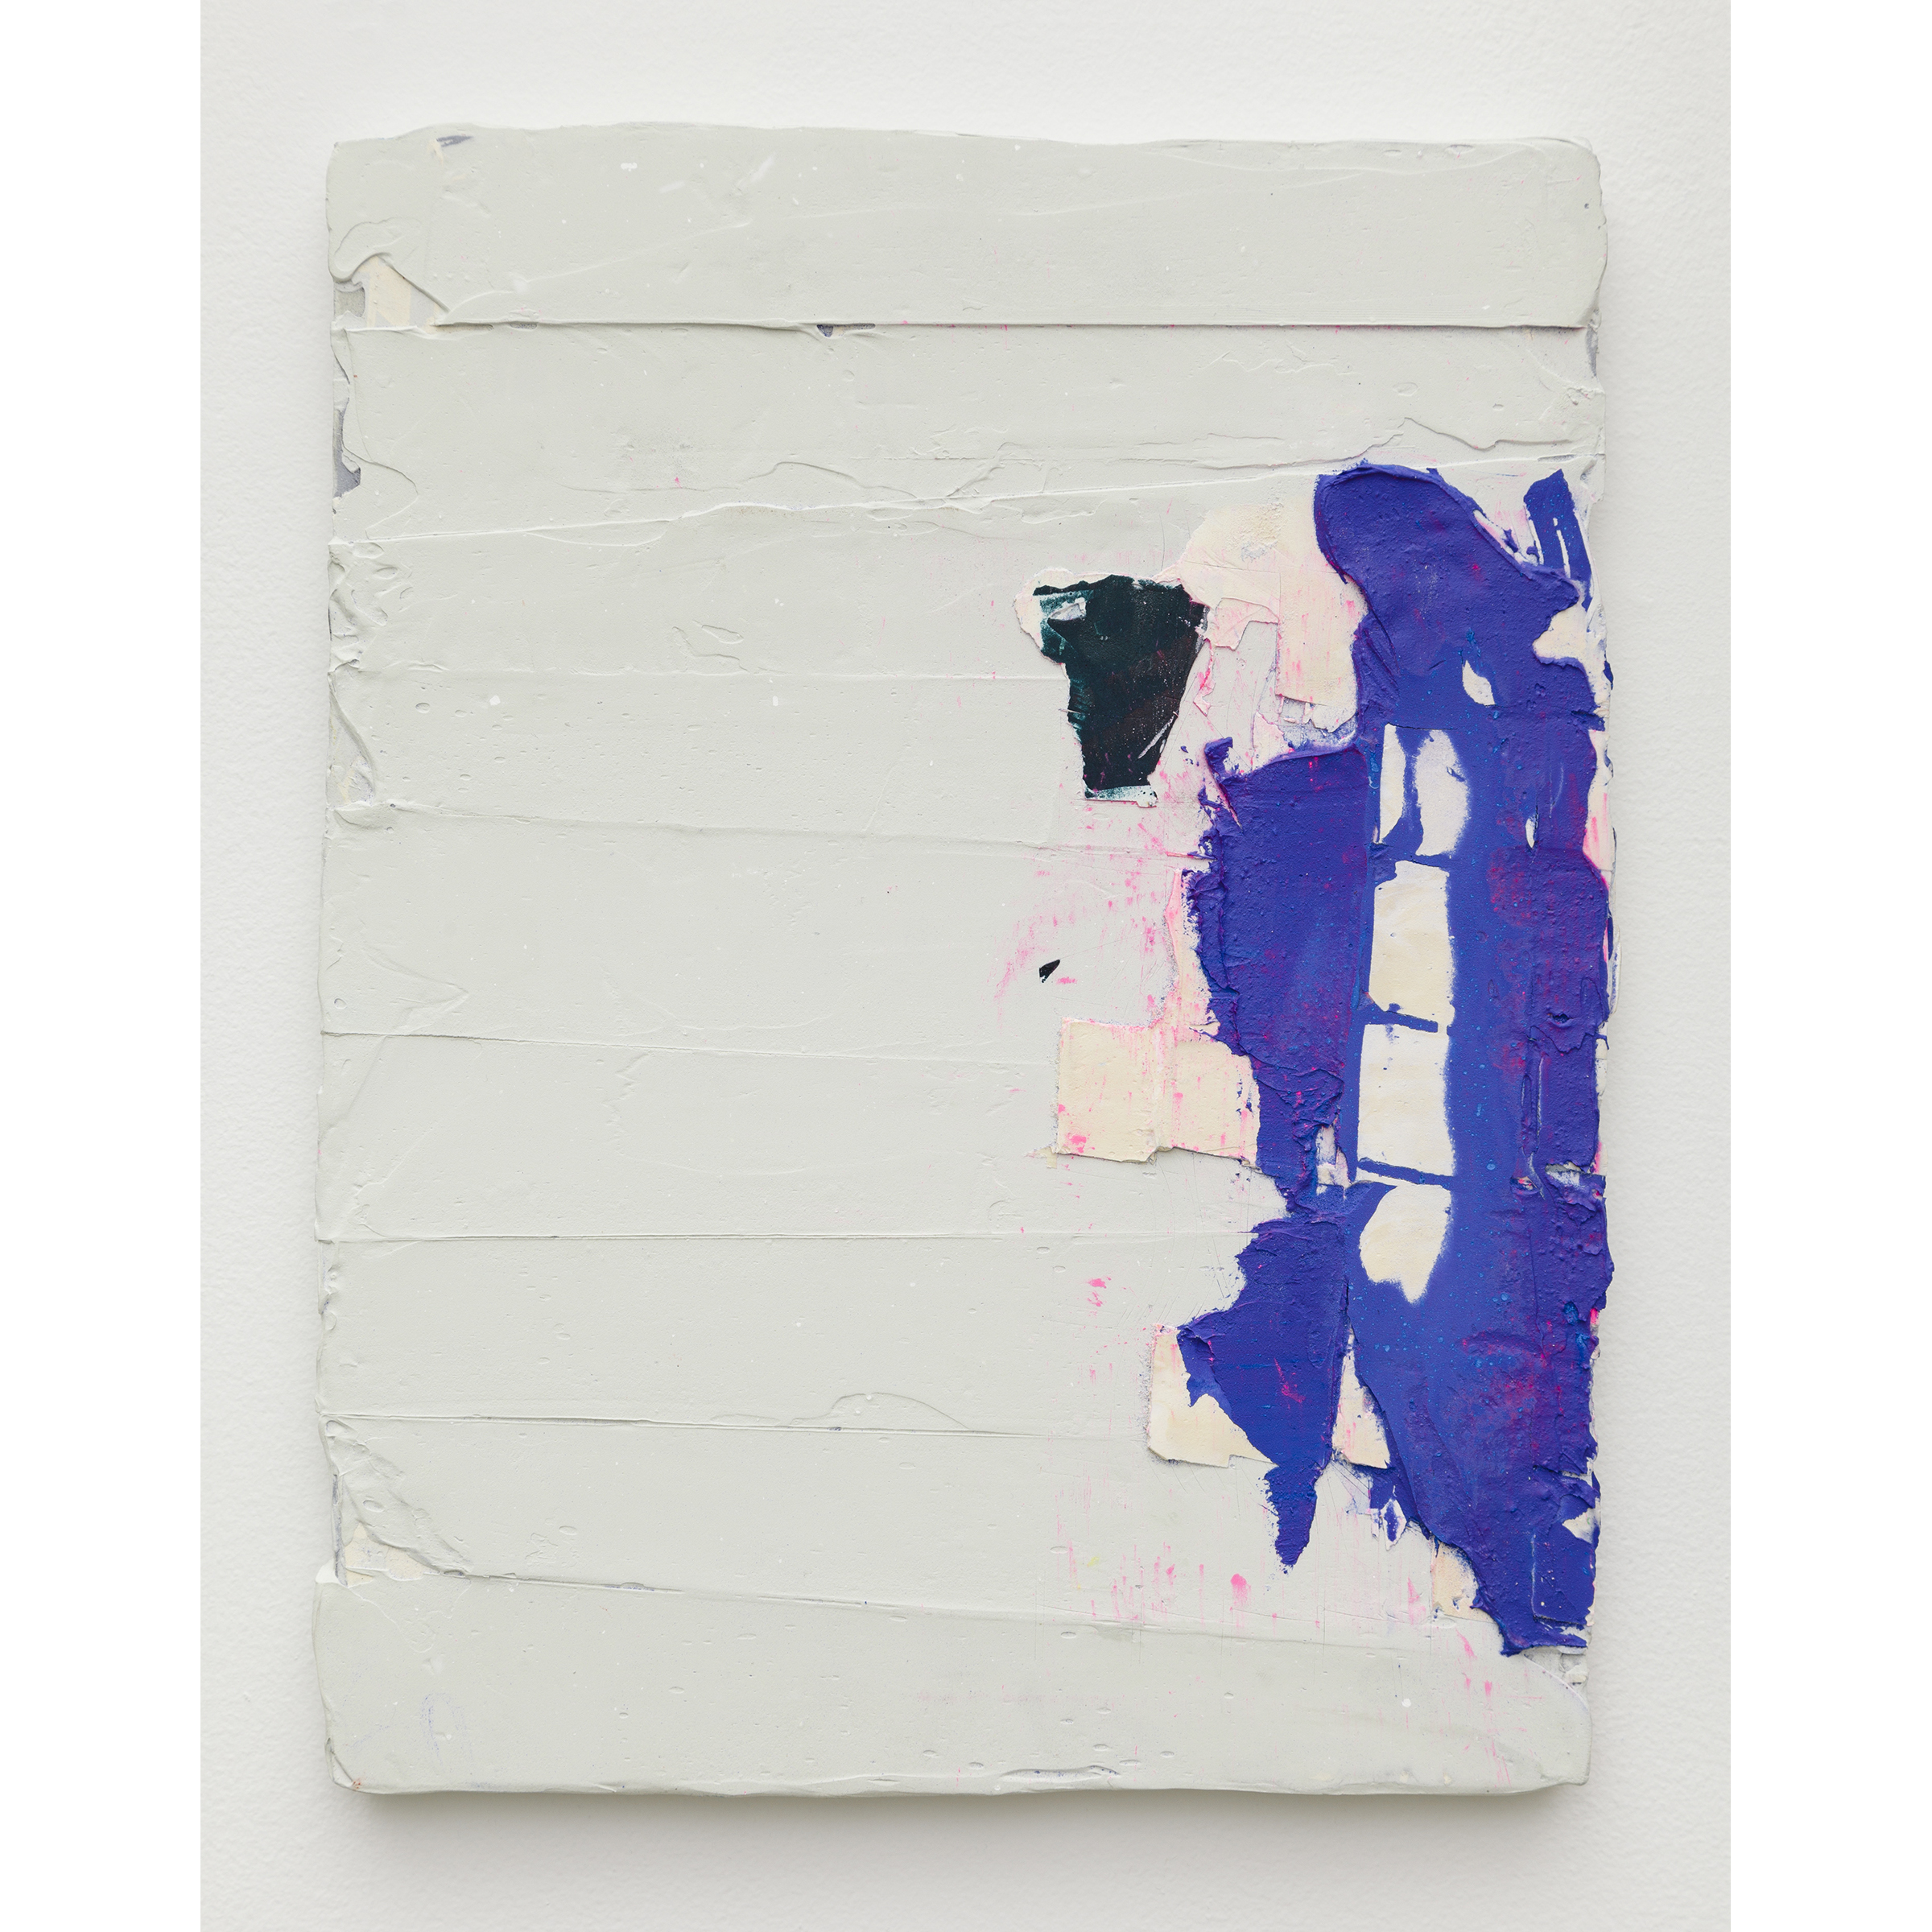 Nicolas Roggy,  Untitled , 2014, primer, modeling paste, pigment, acrylic paint on PVC, 11.8 x 15.3 x 0.7 in